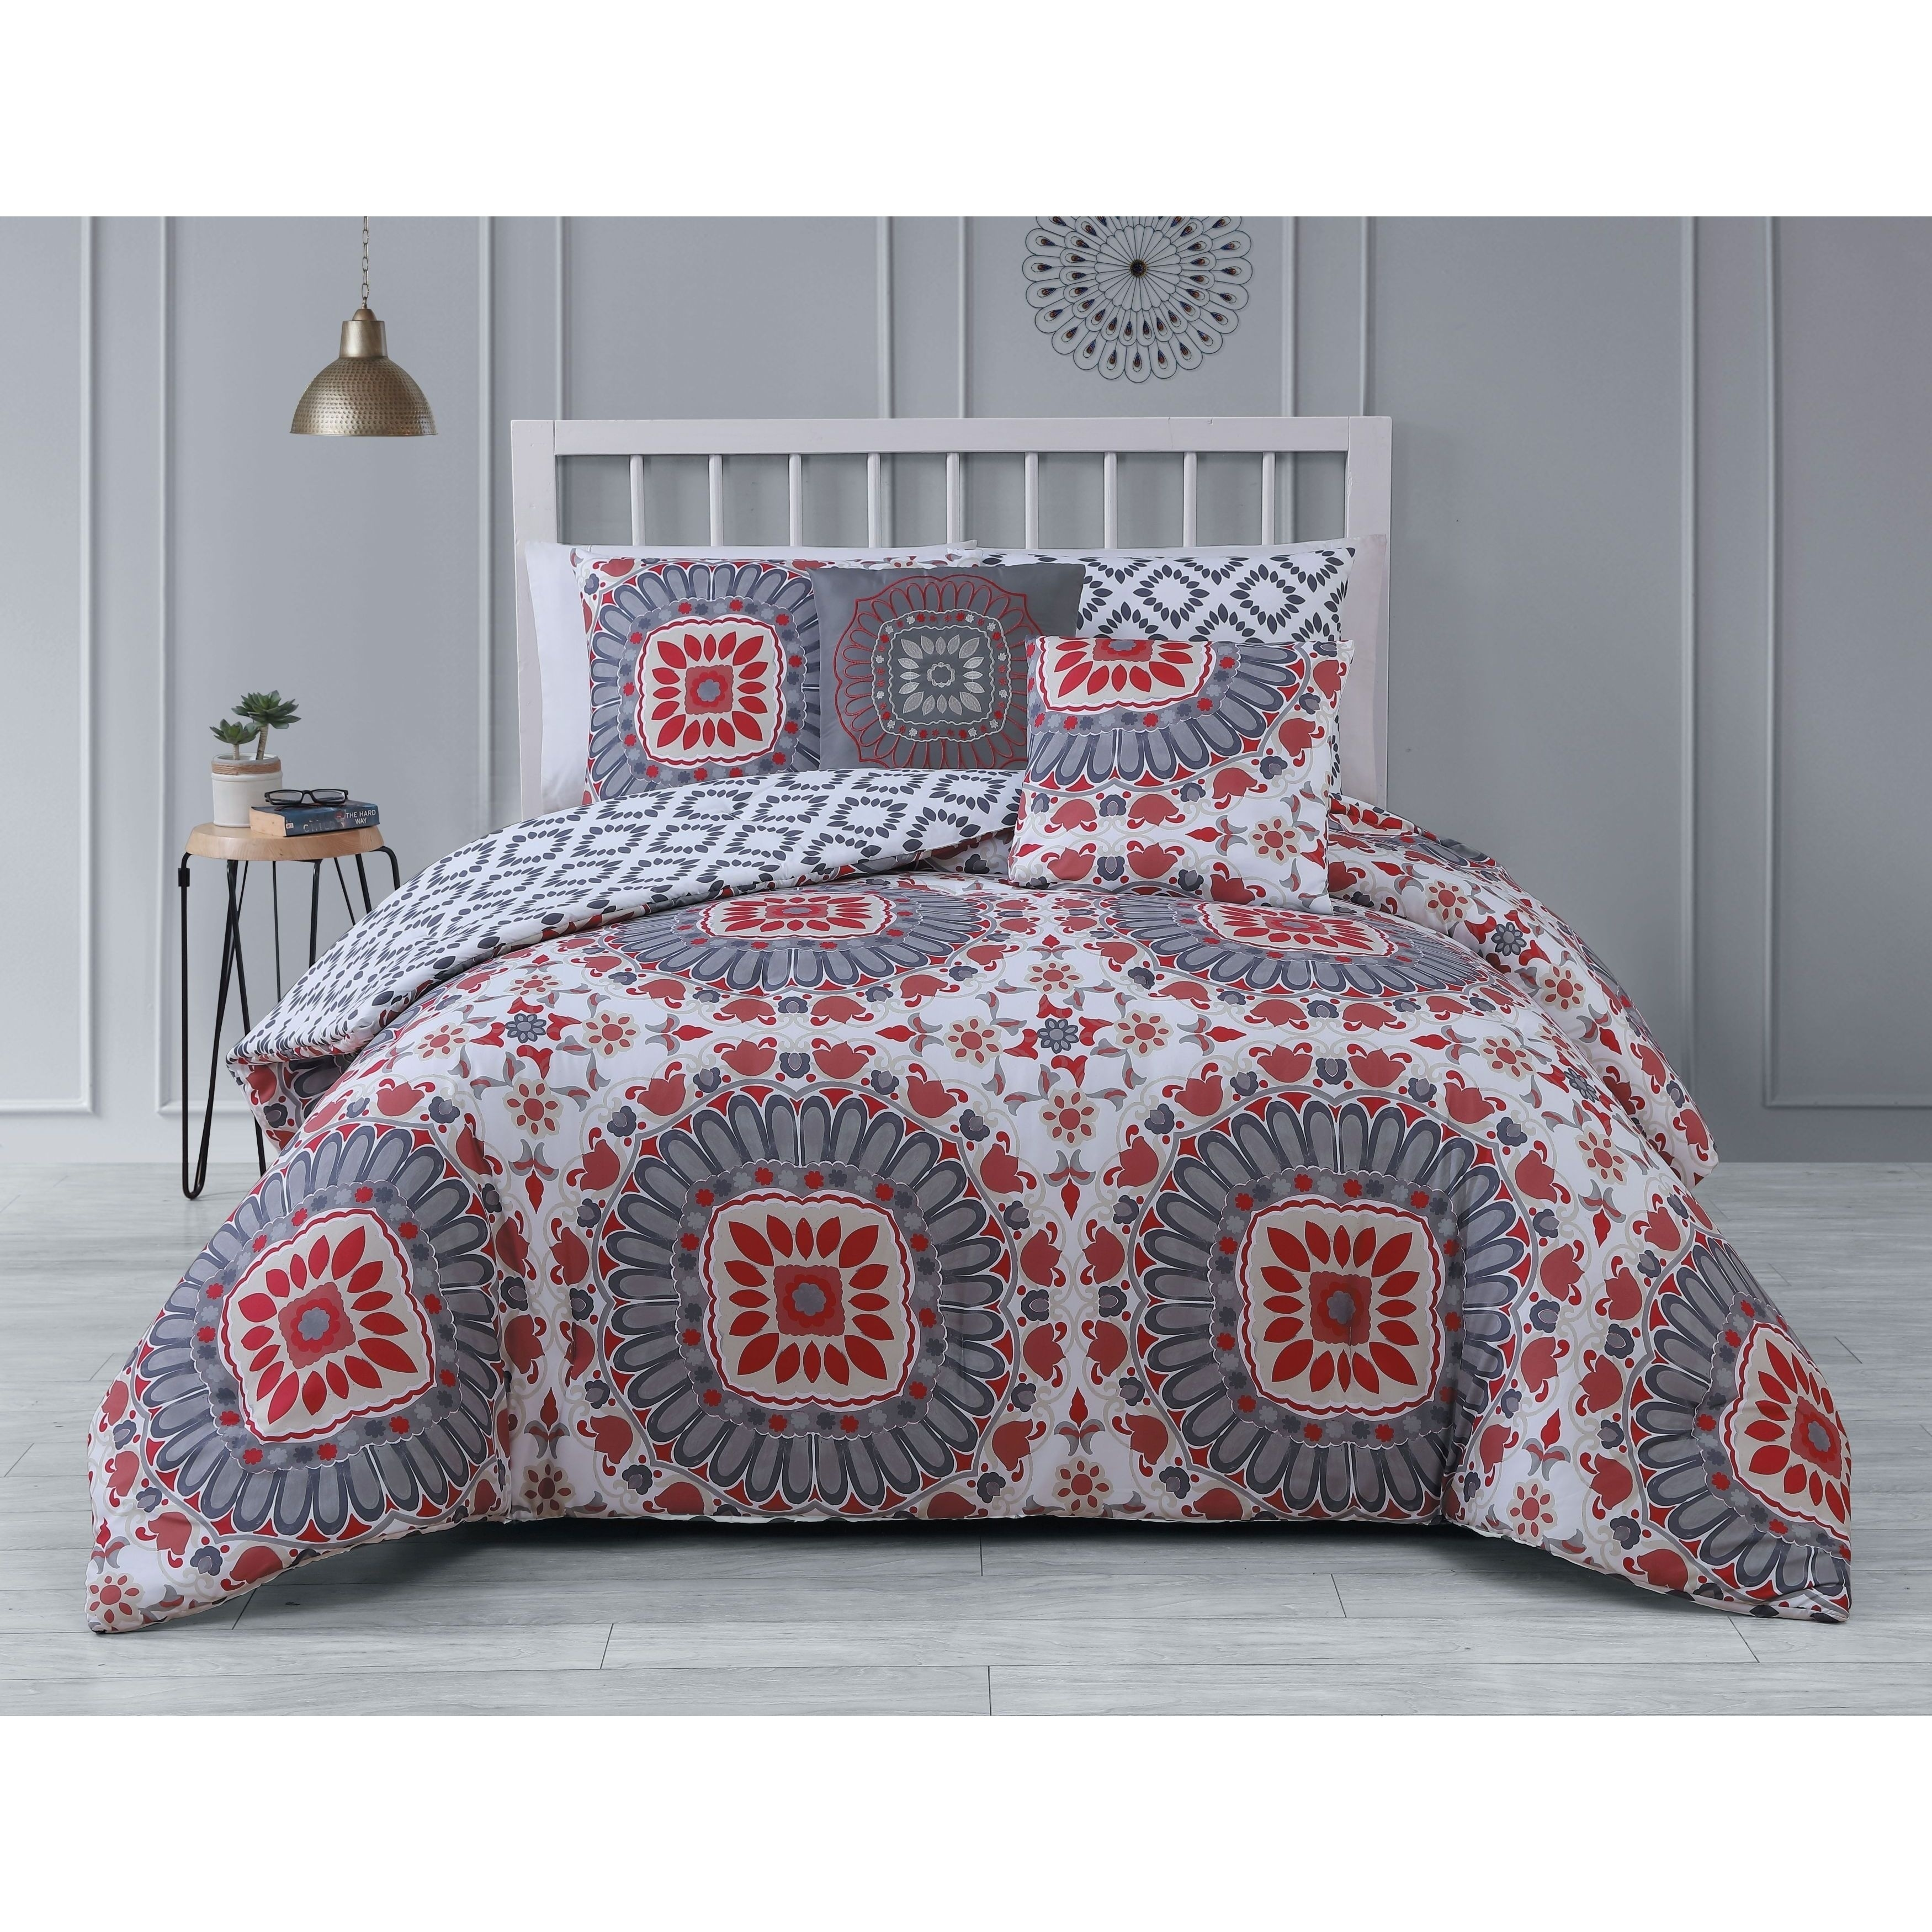 product bedding bath set free overstock home bed chic red bag a salisbury piece in com comforter